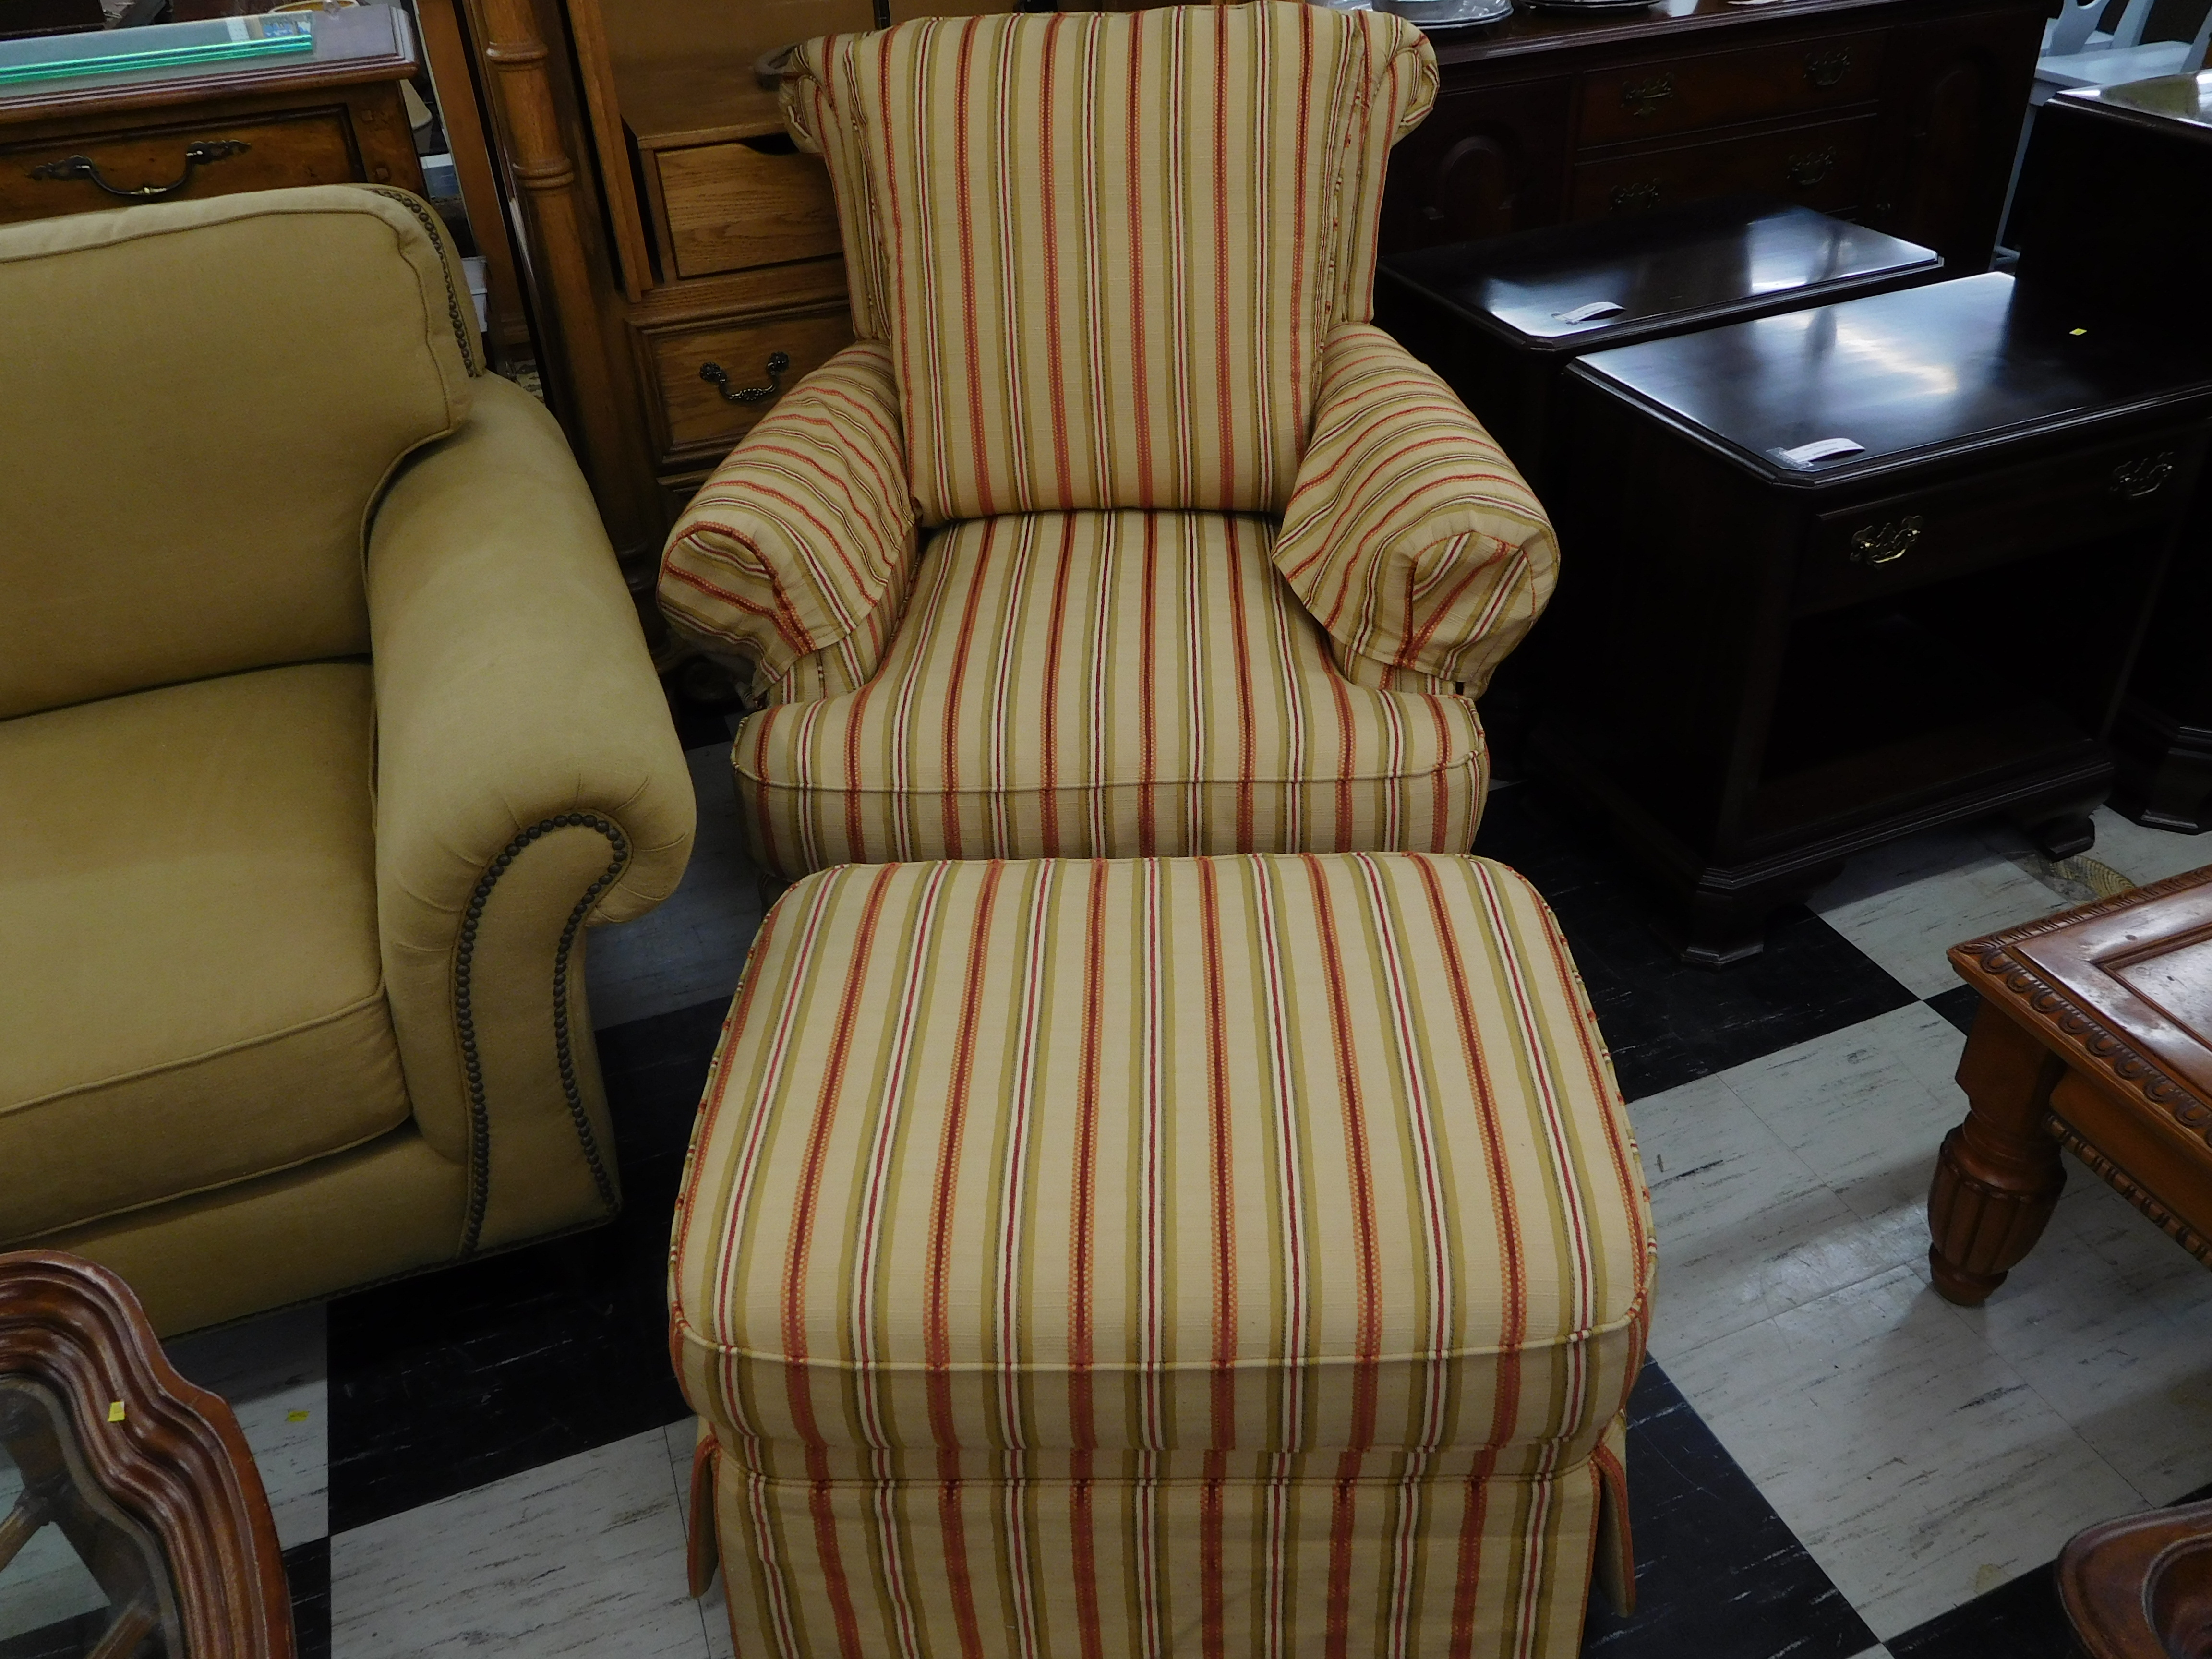 Wel e to AshevilleUsedFurniture Web home of Nothing New